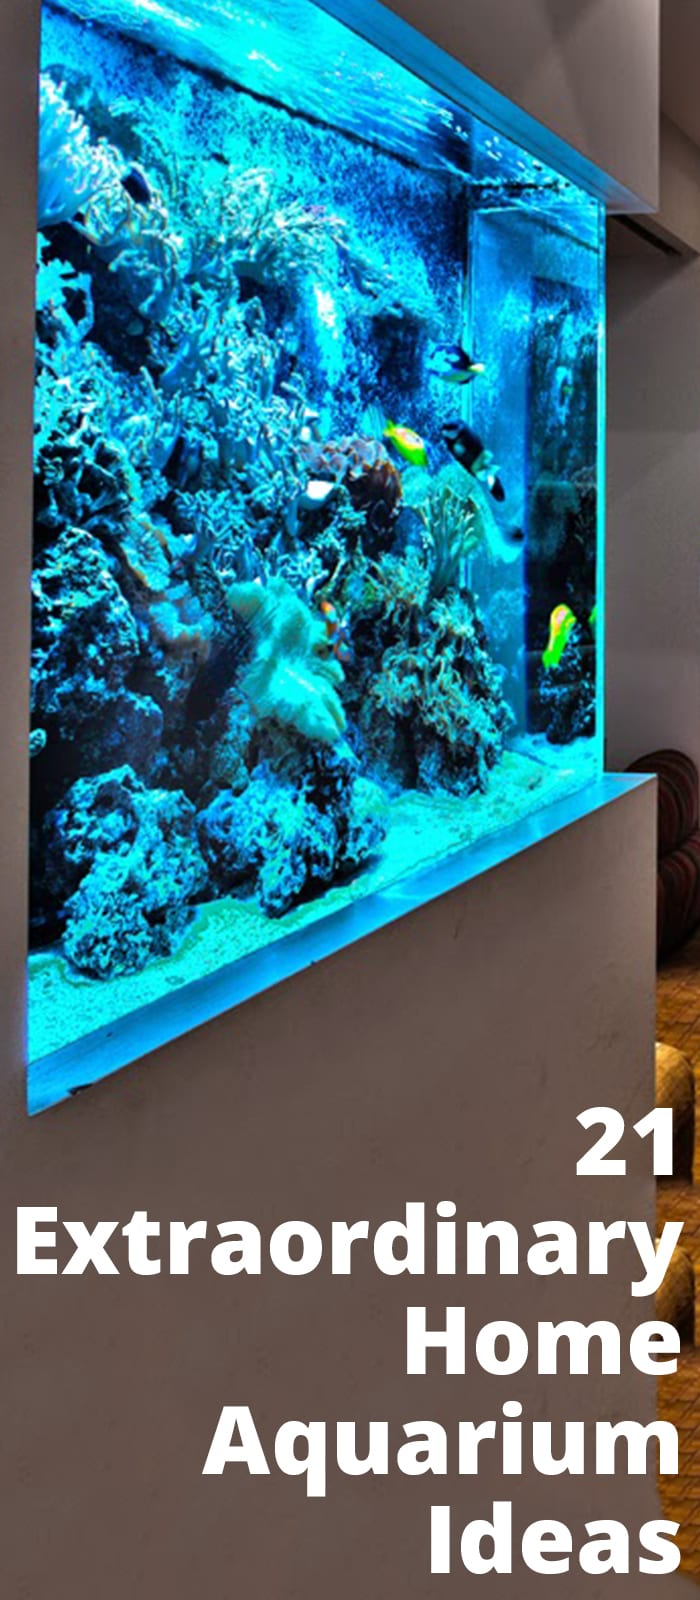 Extraordinary Home Aquarium Ideas